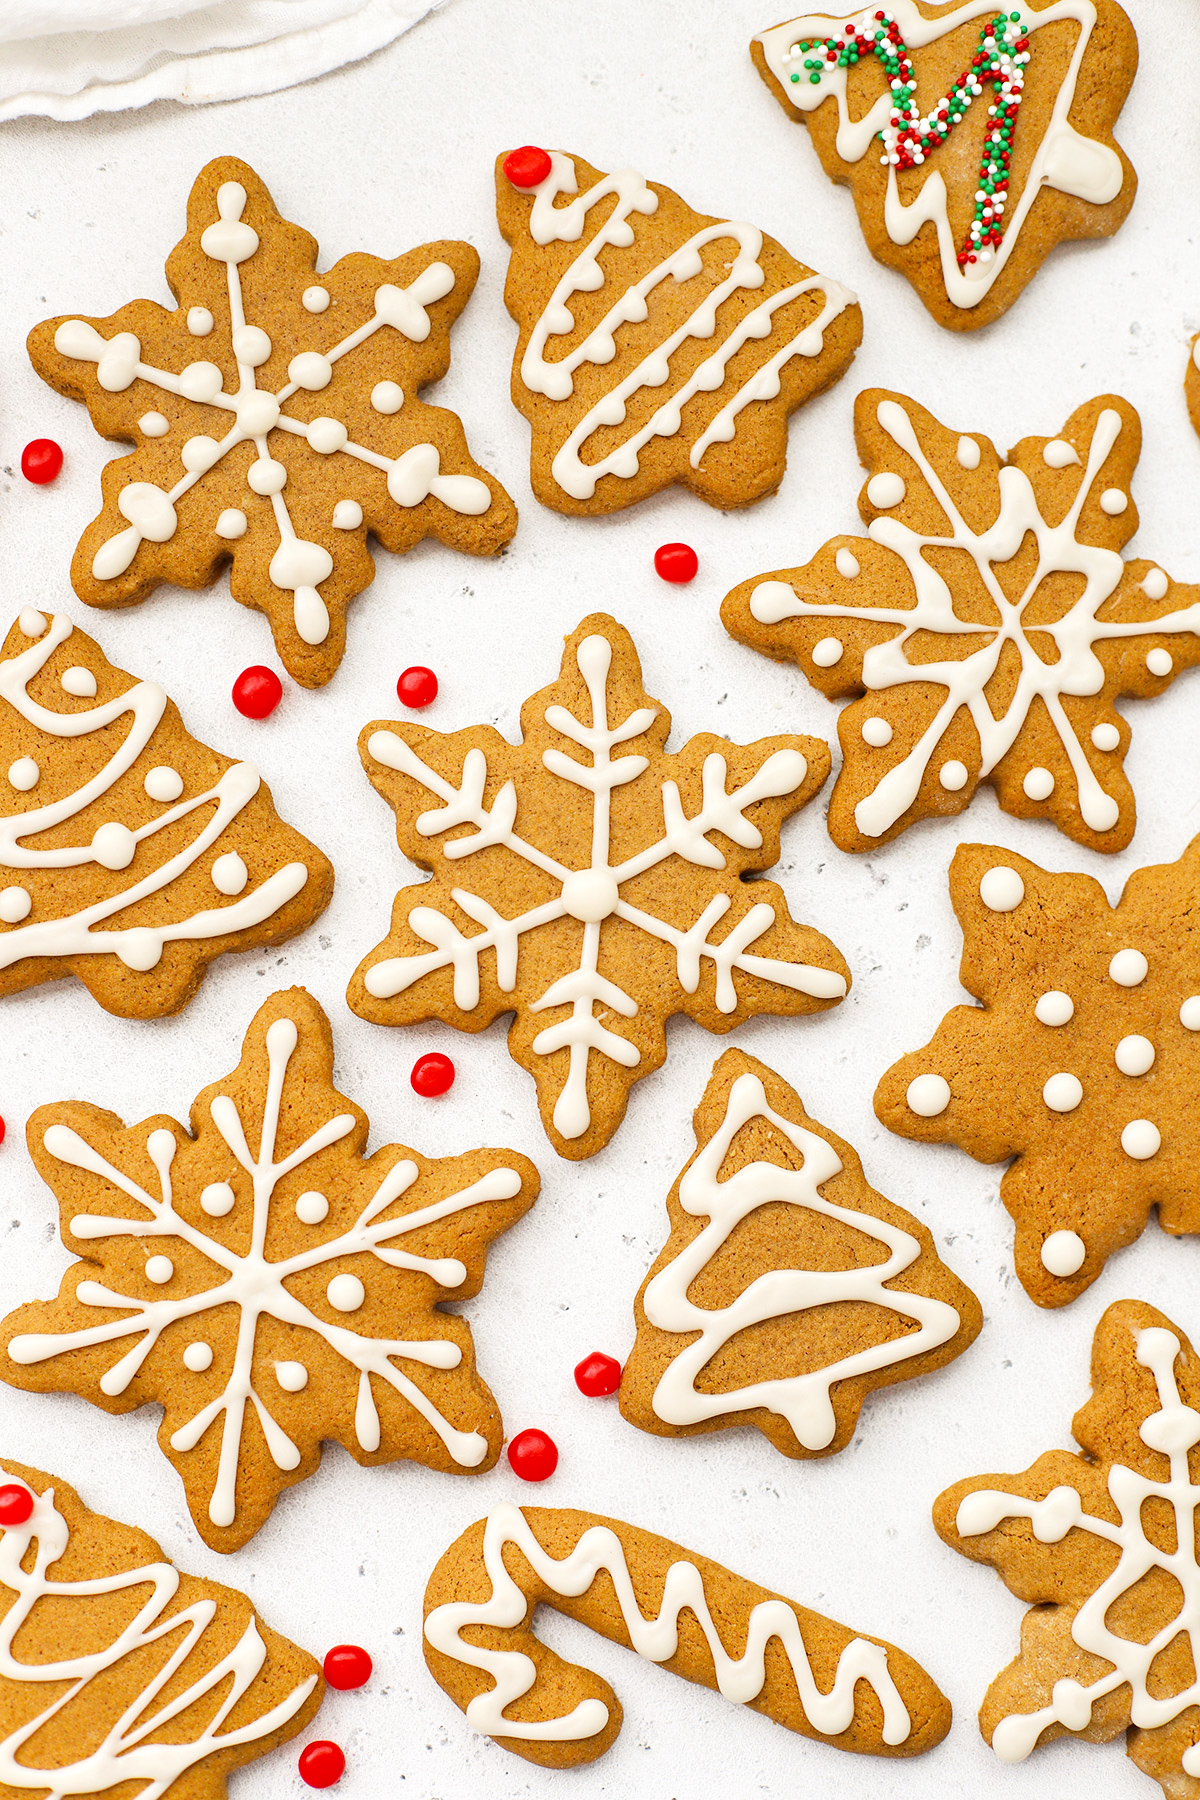 Overhead view of decorated gluten-free gingerbread cookies with white icing on a white background